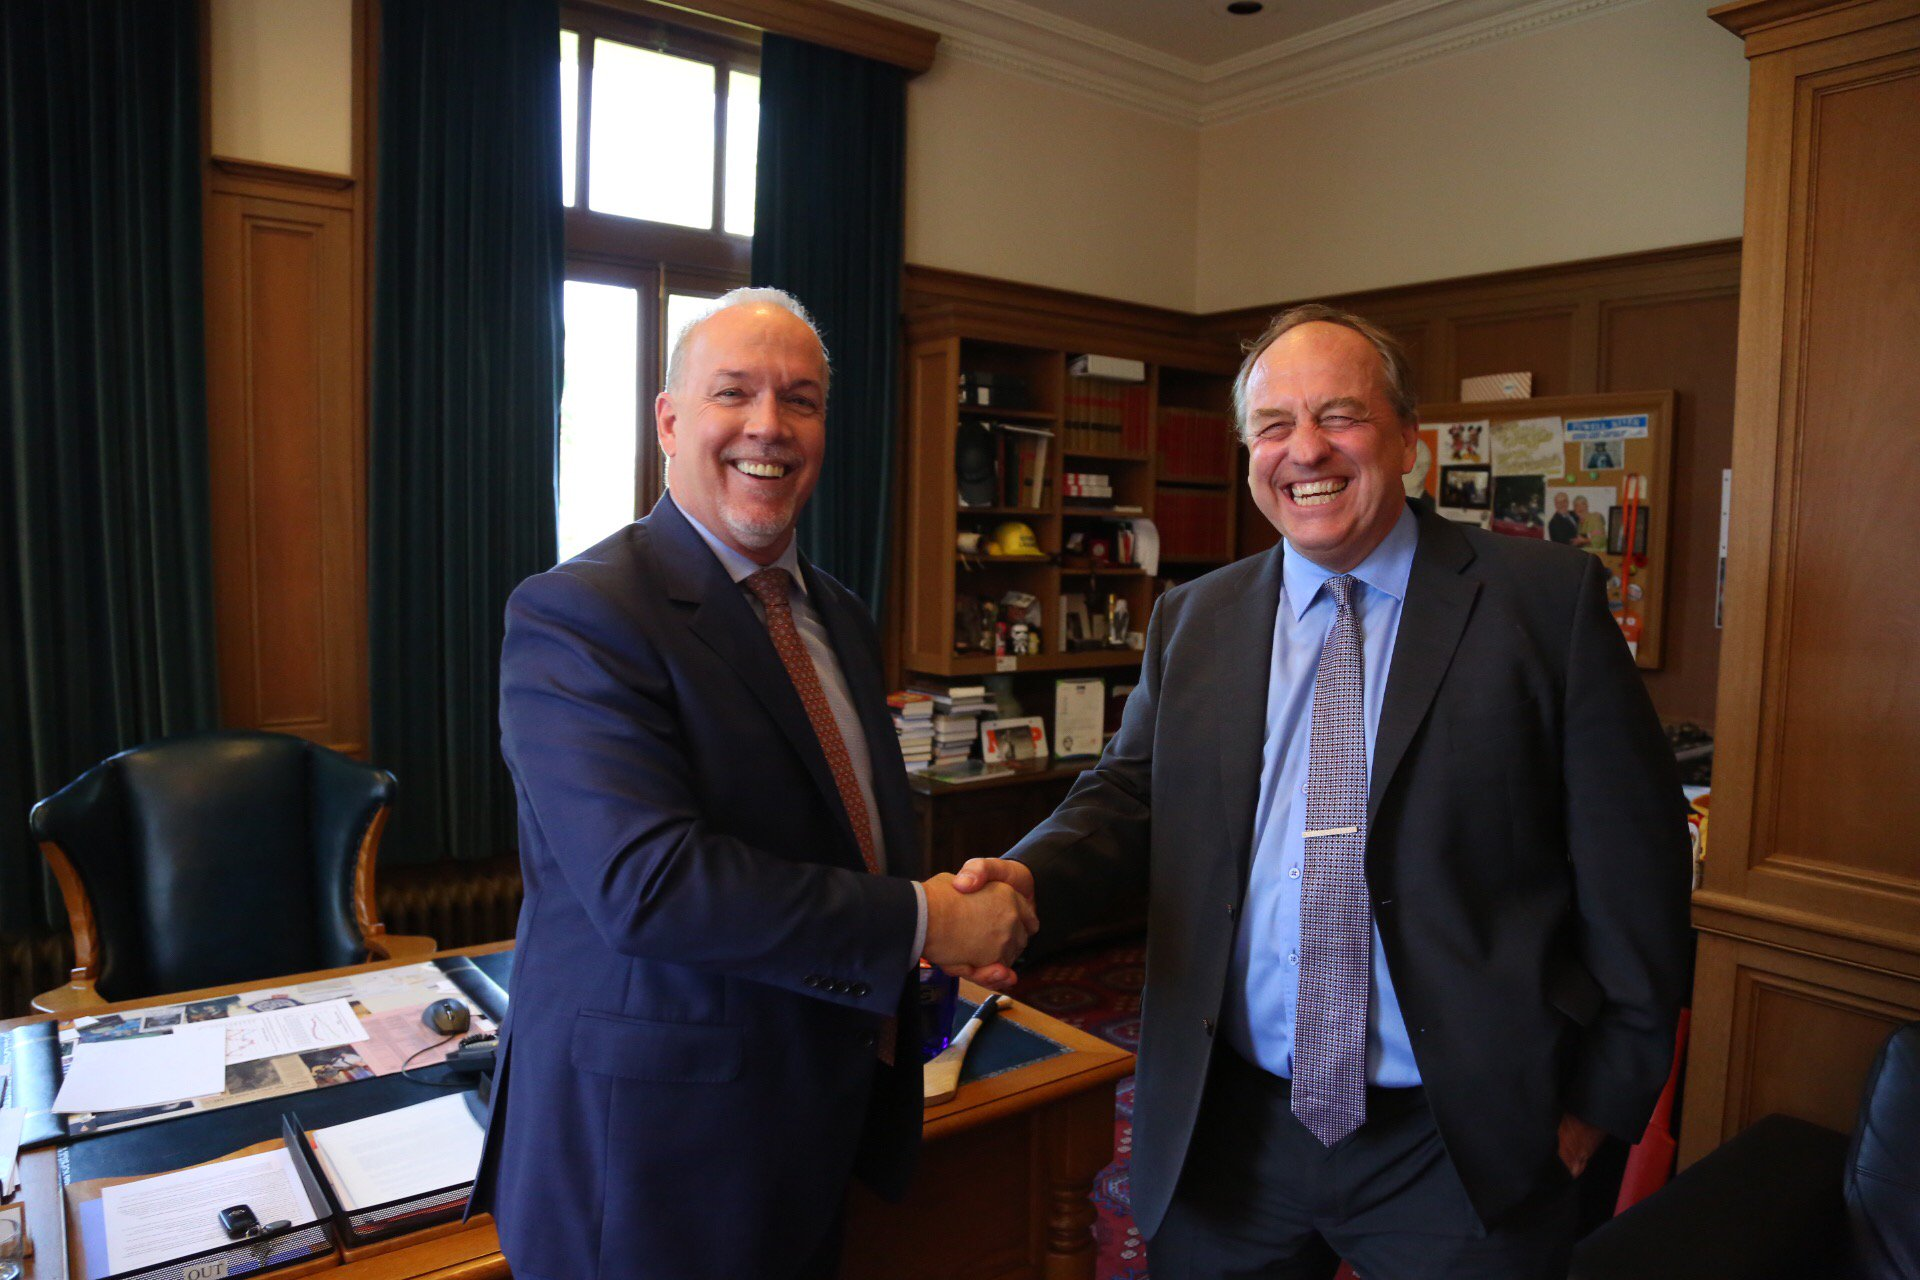 John Horgan and Andrew Weaver handshake